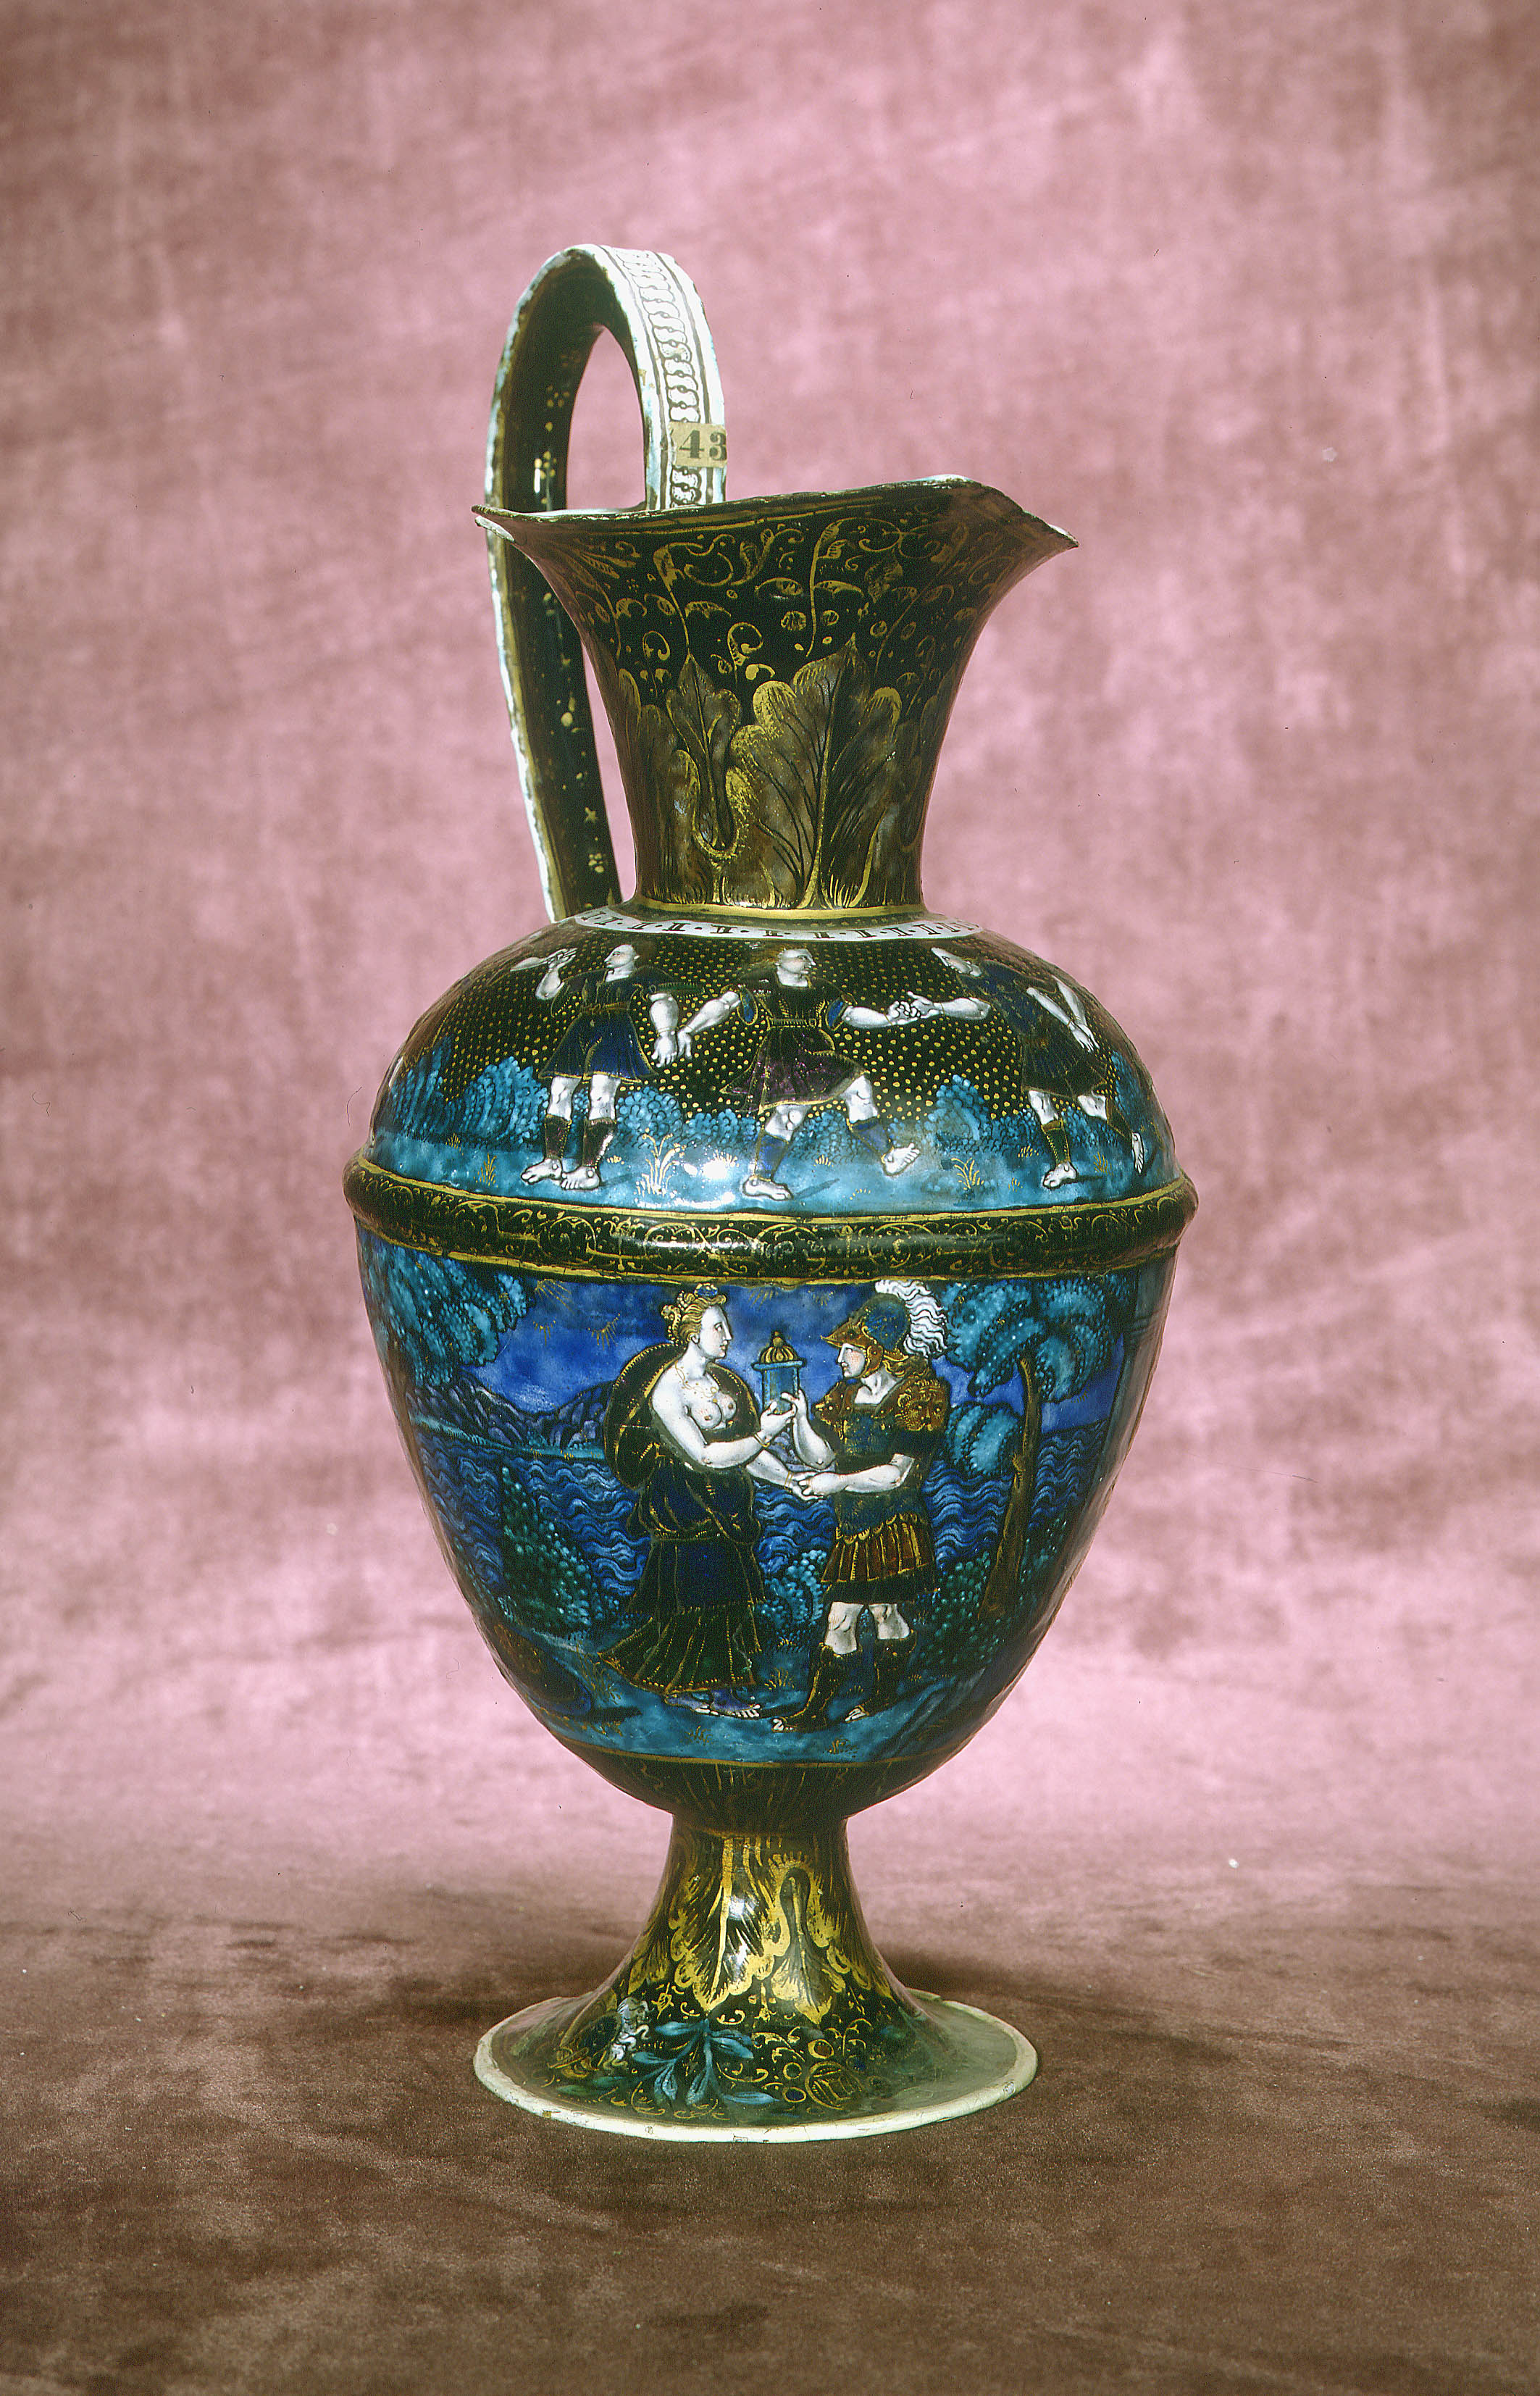 Master I.C. -  Ewer : scenes from the story of Jason and the Golden Fleece